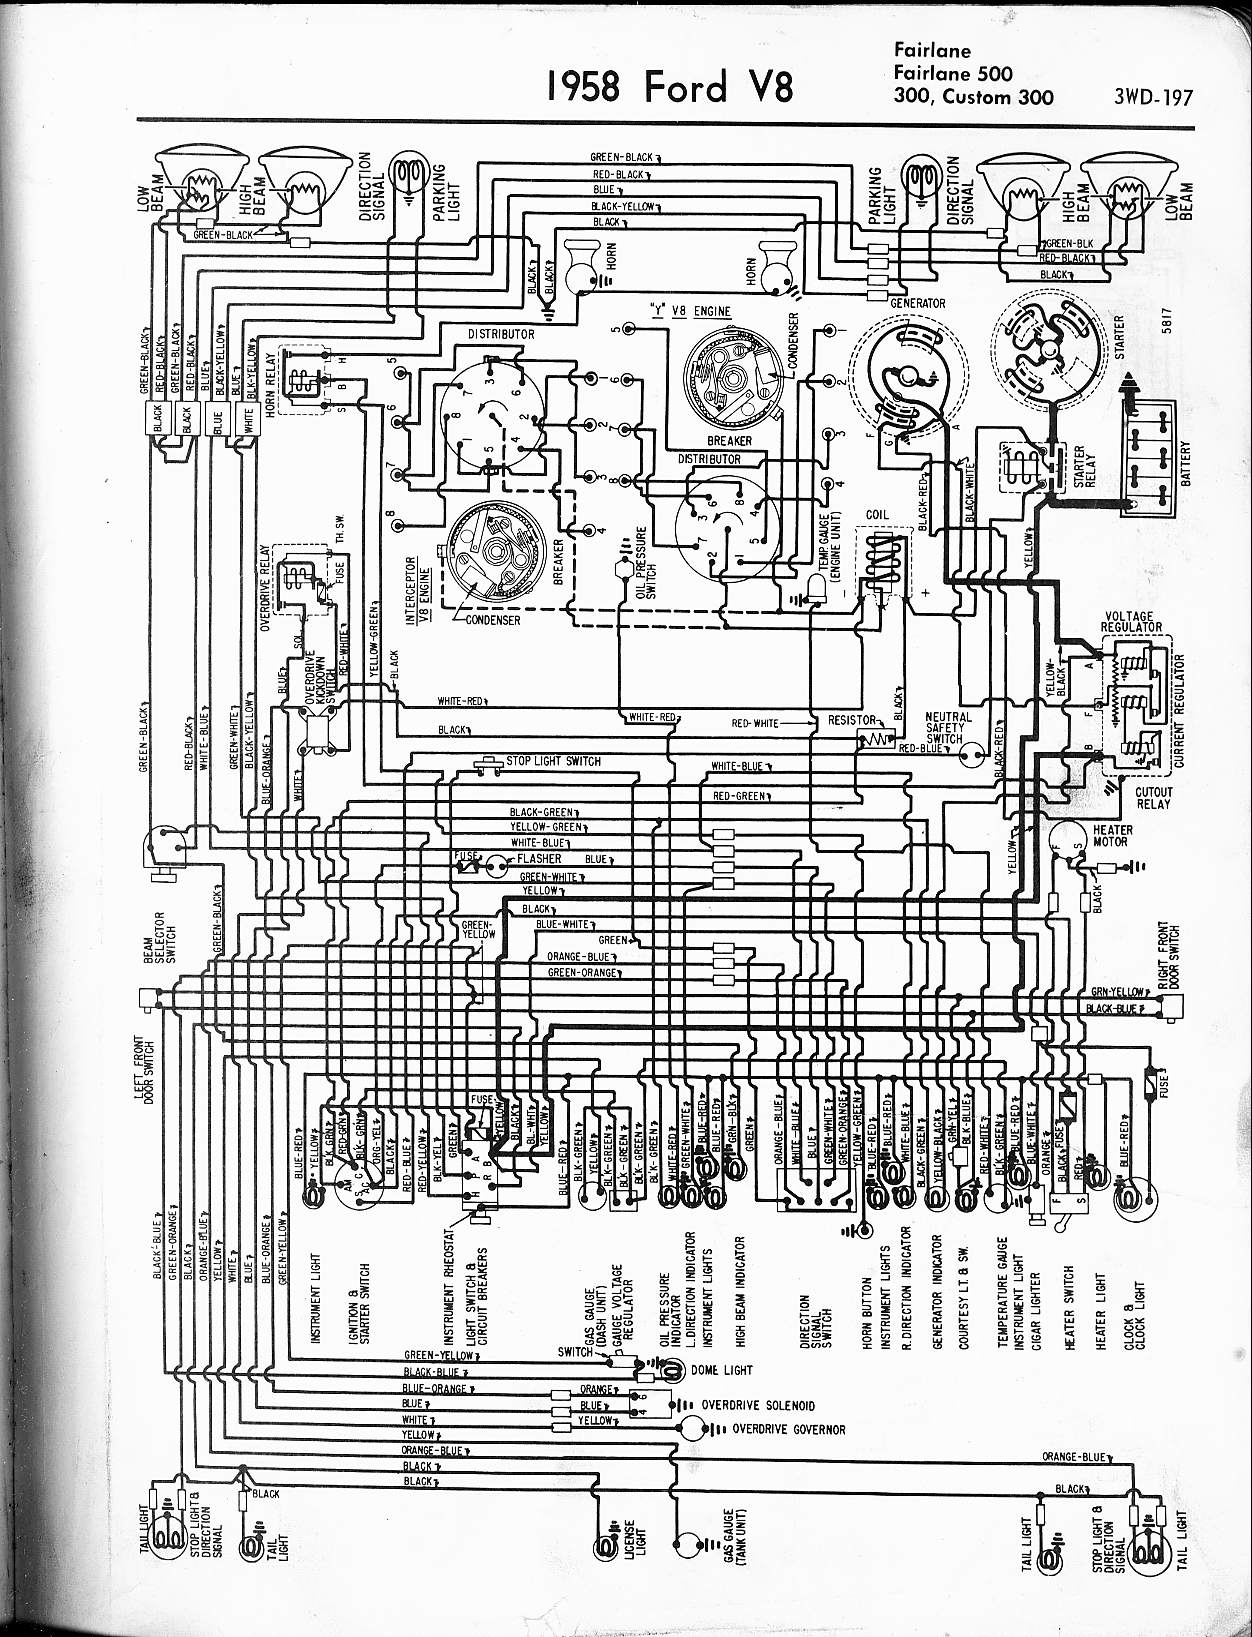 hight resolution of 57 65 ford wiring diagrams 1956 plymouth belvedere wiring diagram 1956 ford fairlane wiring diagram